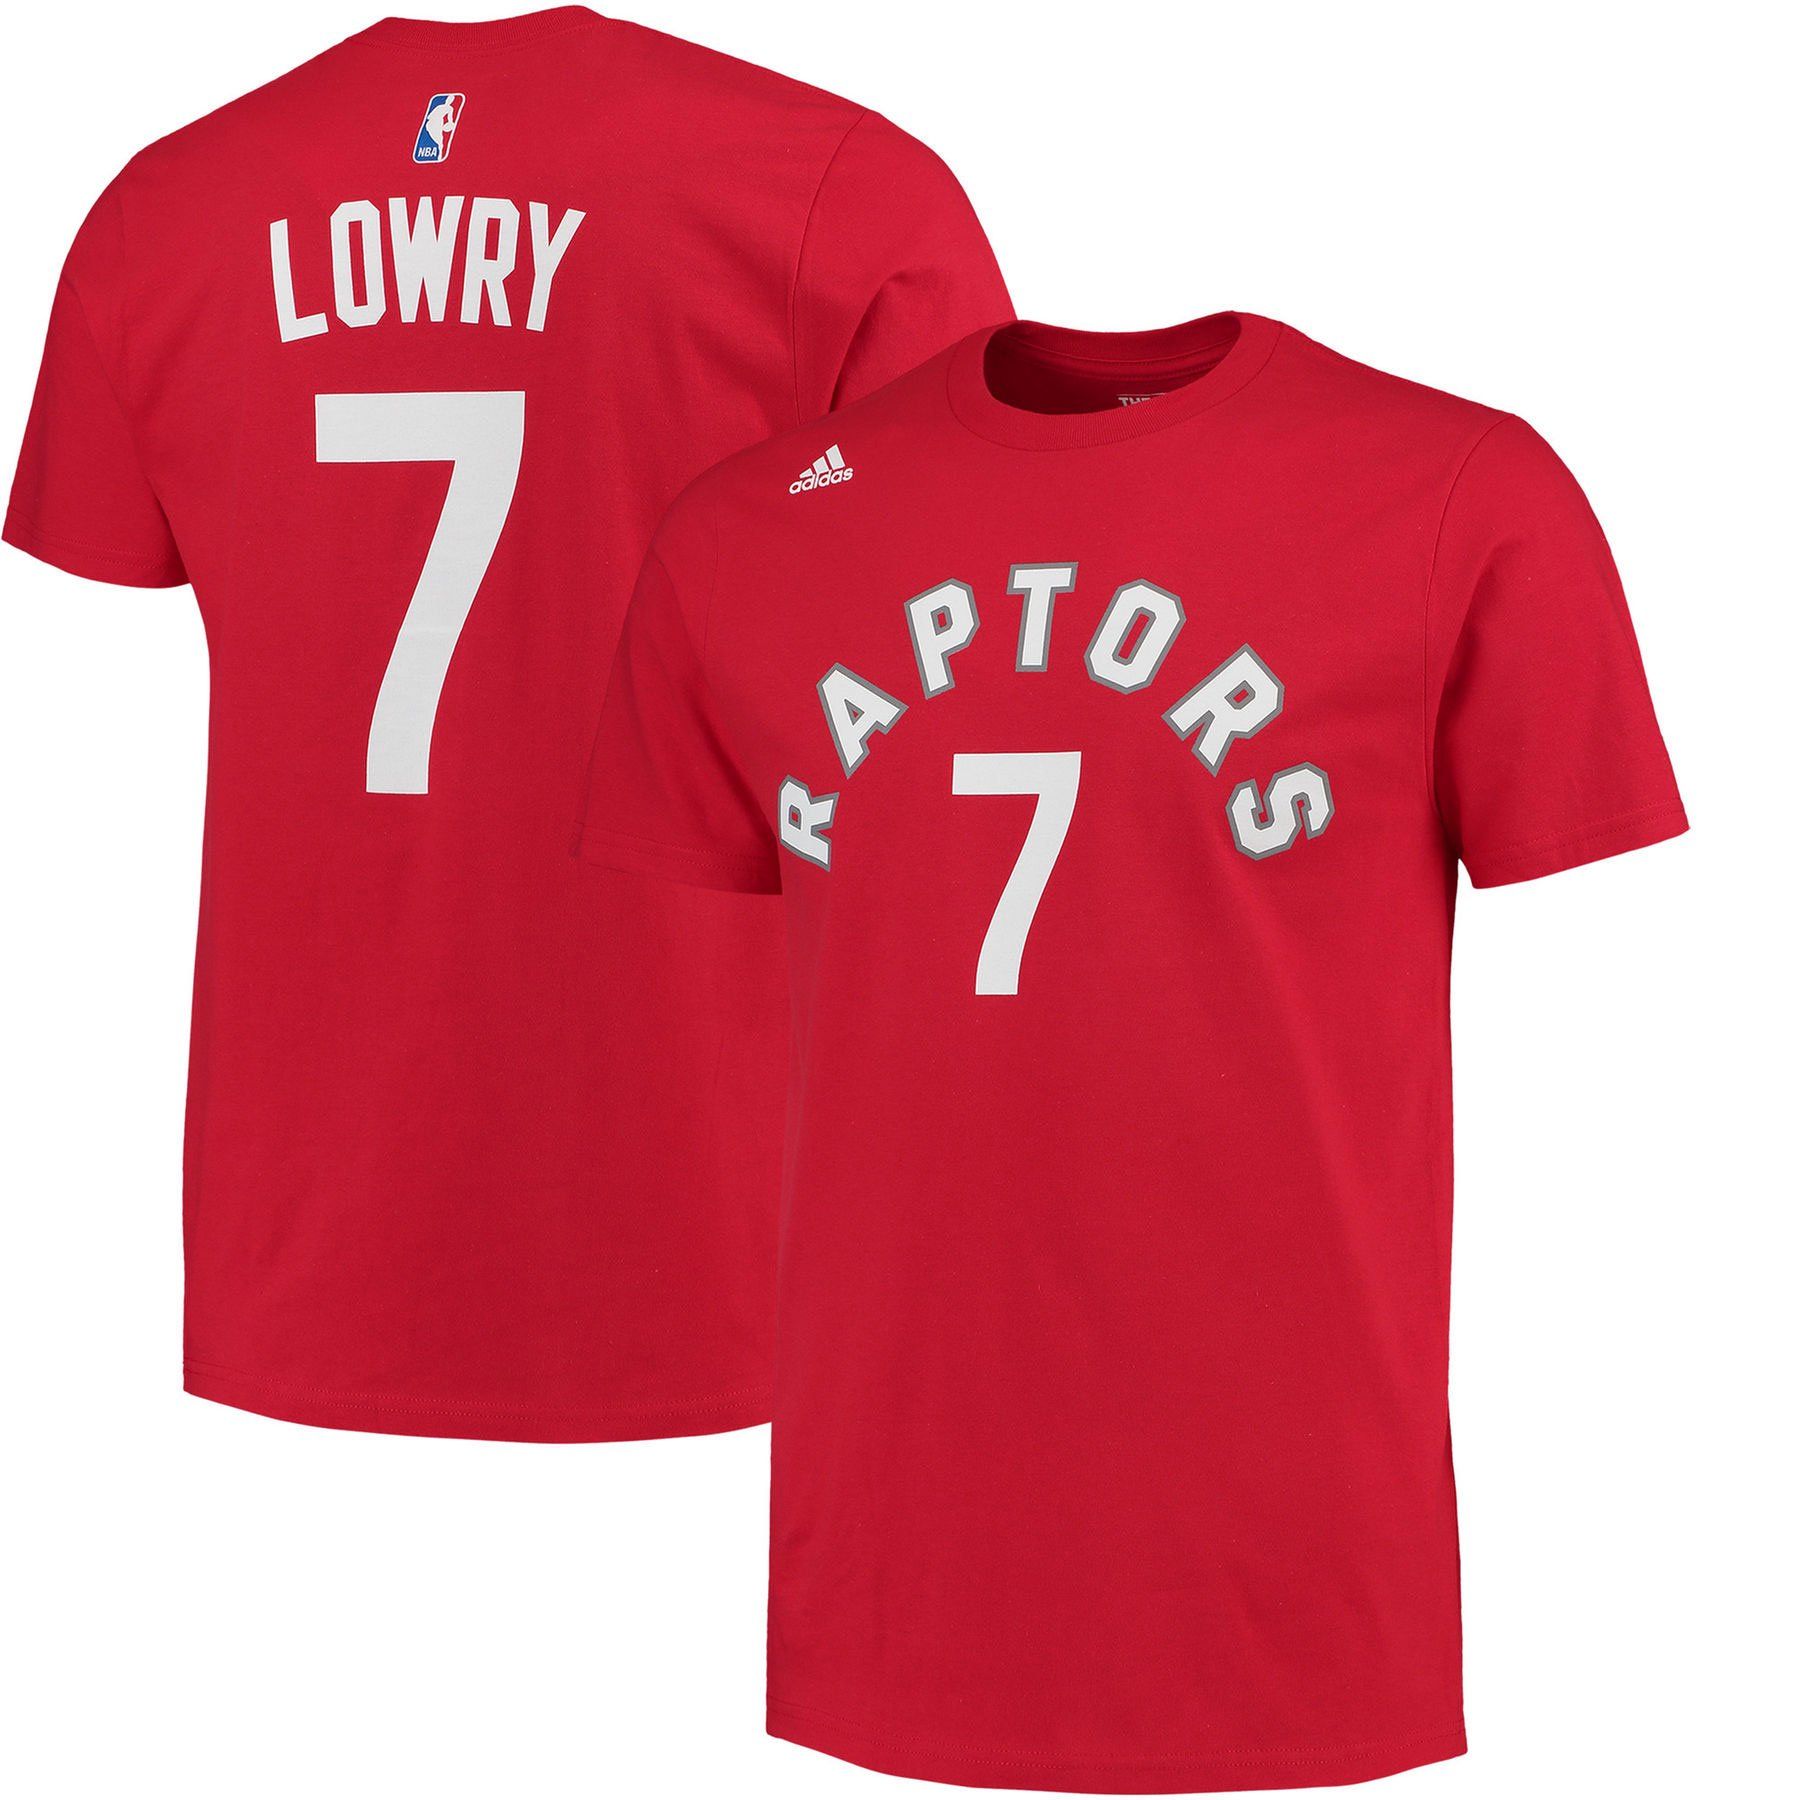 95ed0267db69 Toronto Raptors Kyle Lowry NBA Name   Number T-Shirt - Red - Adidas ...